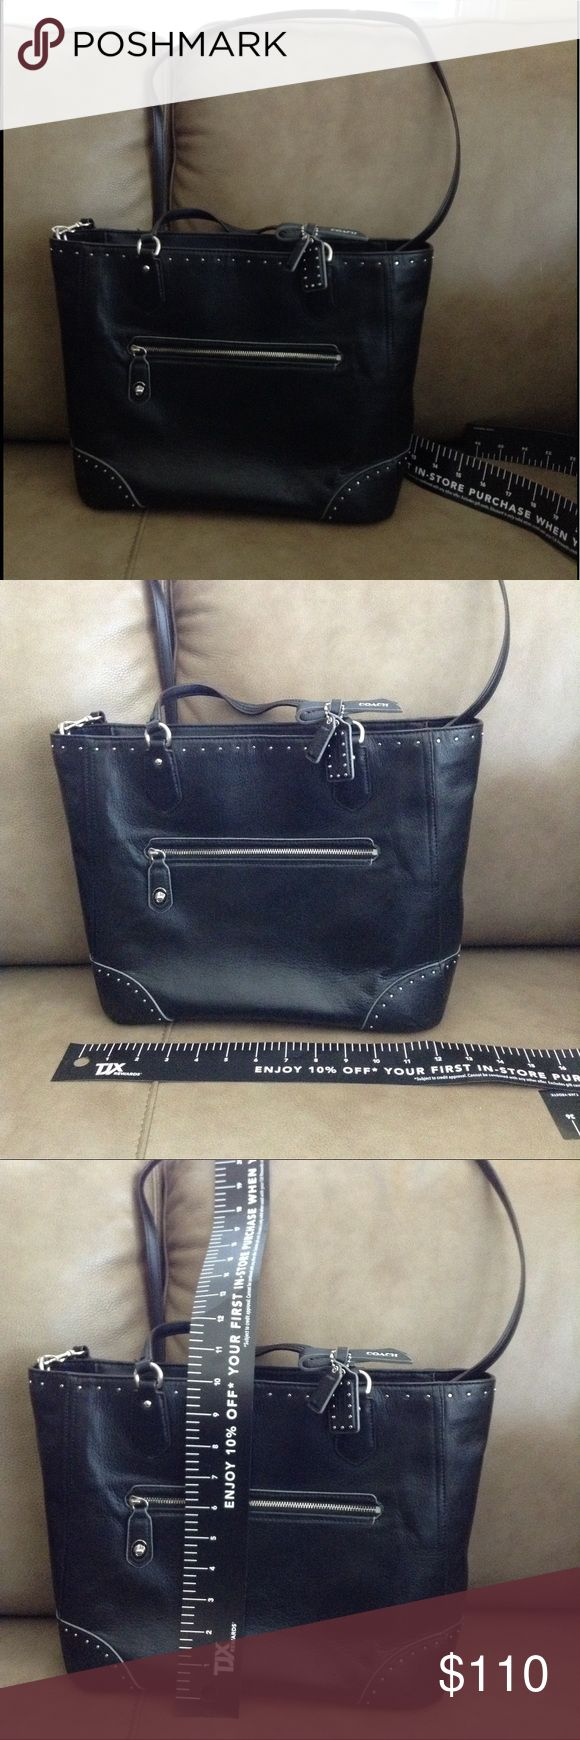 Authentic Coach tote Authentic Coach tote. Black Leather. Excellent used condition. Inside Ipad pocket. Turn key zipper lock on Coach Bags Totes